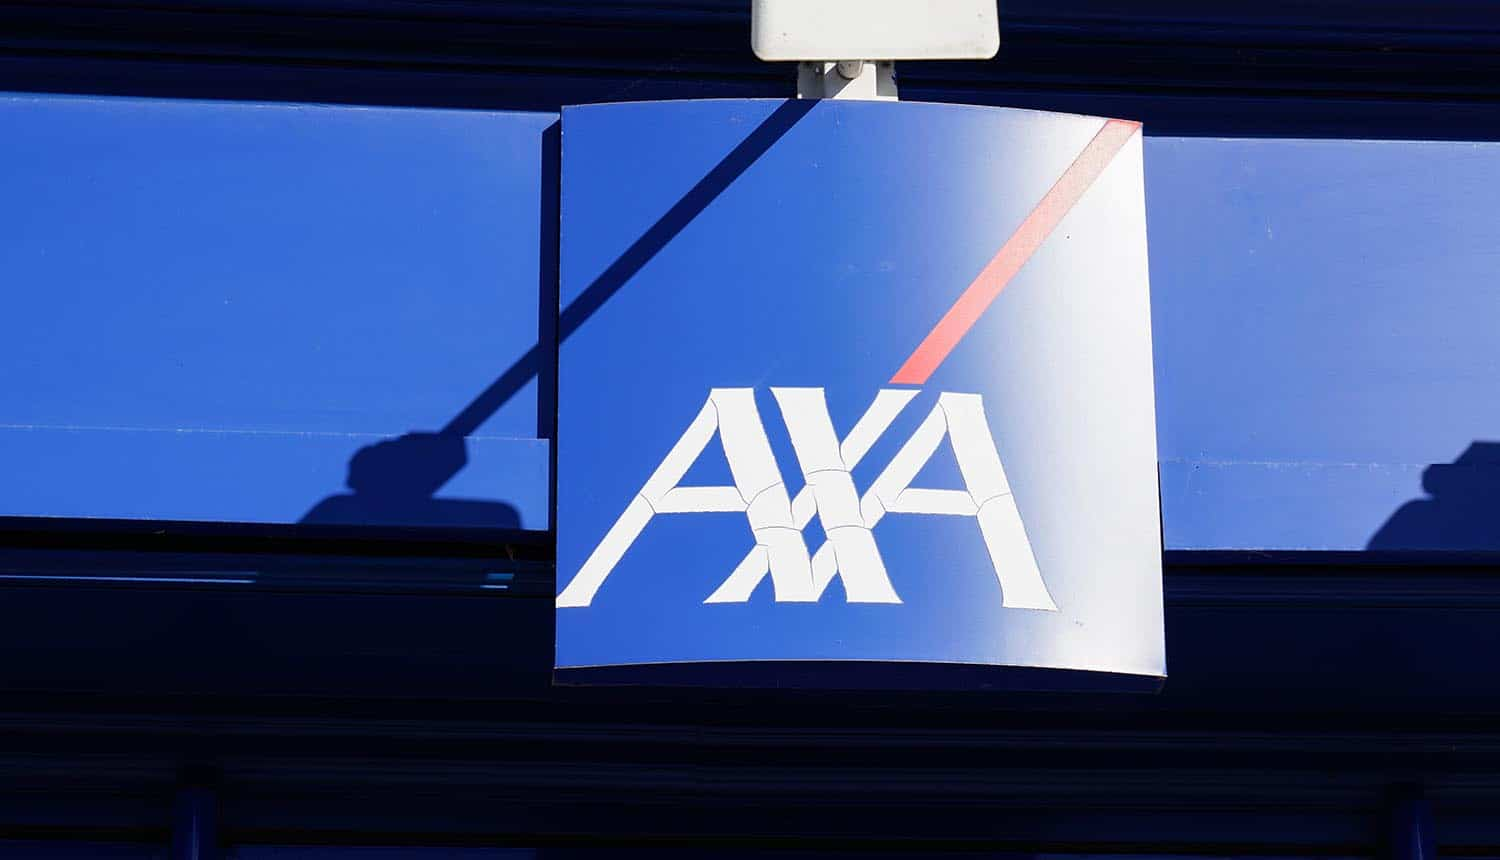 AXA logo on building showing ransomware attack after change in cyber insurance policies